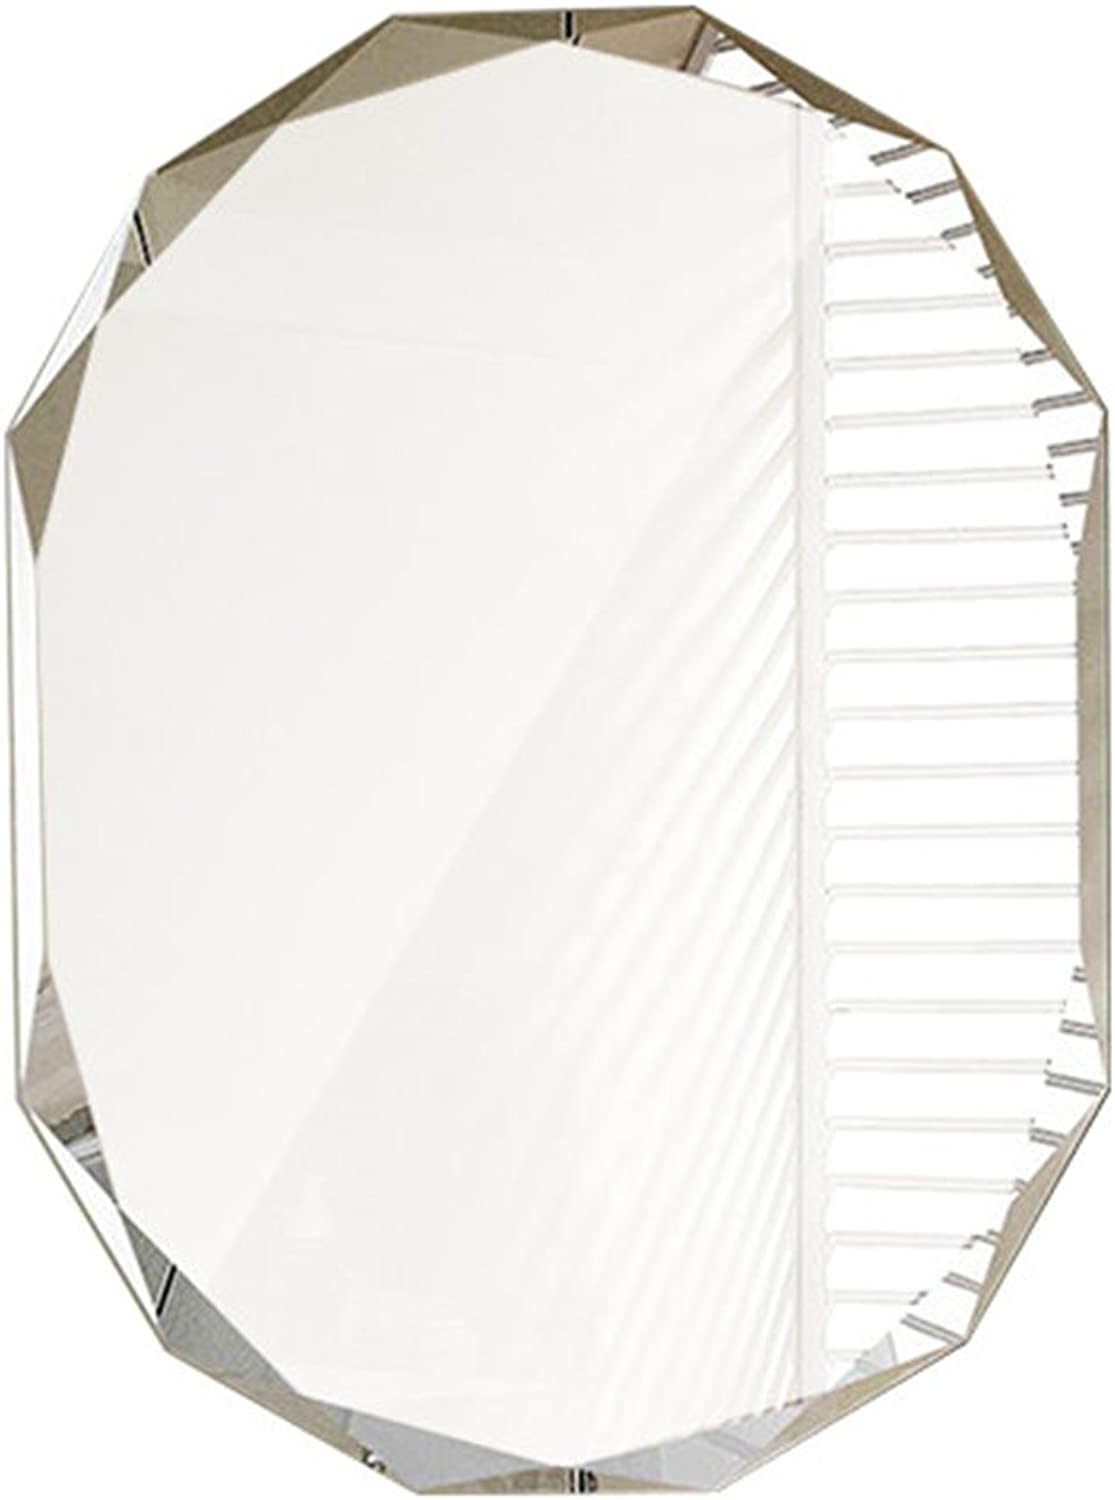 Mirror Hanging on The Wall, Horizontal Bathroom Wall Mirror Dressing Table Mirror Creative Living Room Mirror Entrance Mirror Home Makeup Mirror (color   Silver, Size   45  60cm)